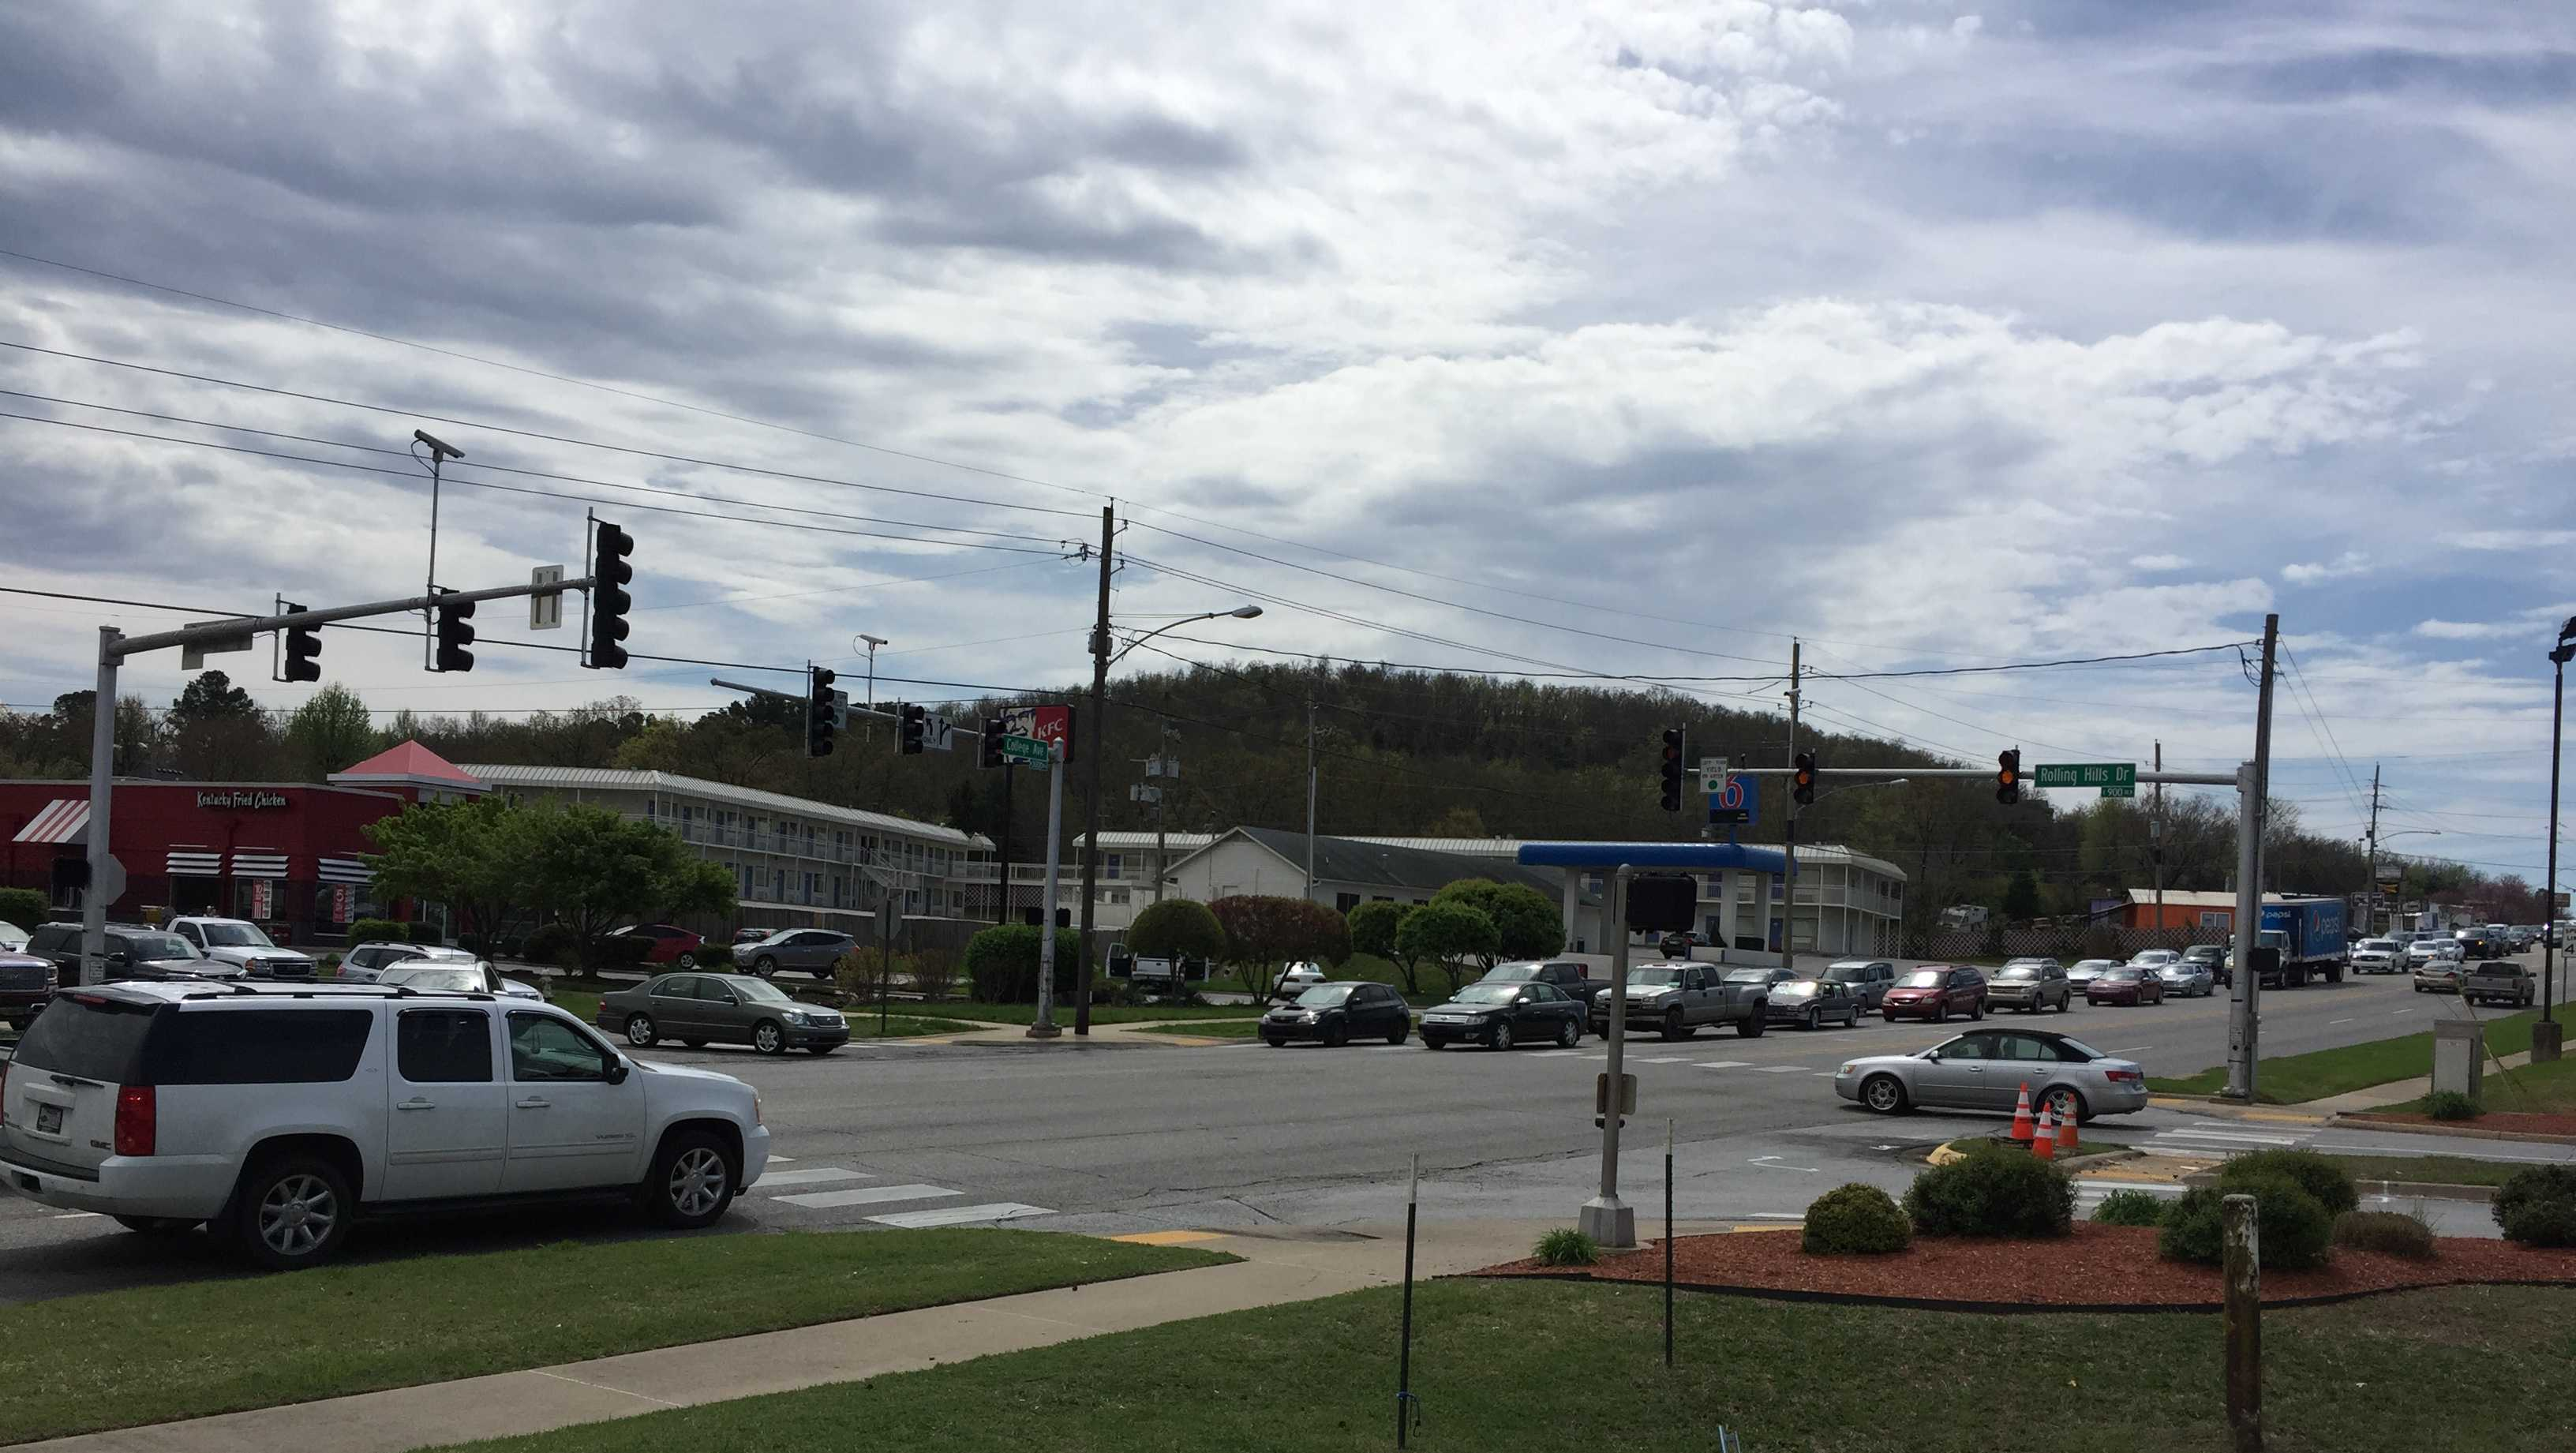 Intersection of College Ave. and Rolling Hills Dr.